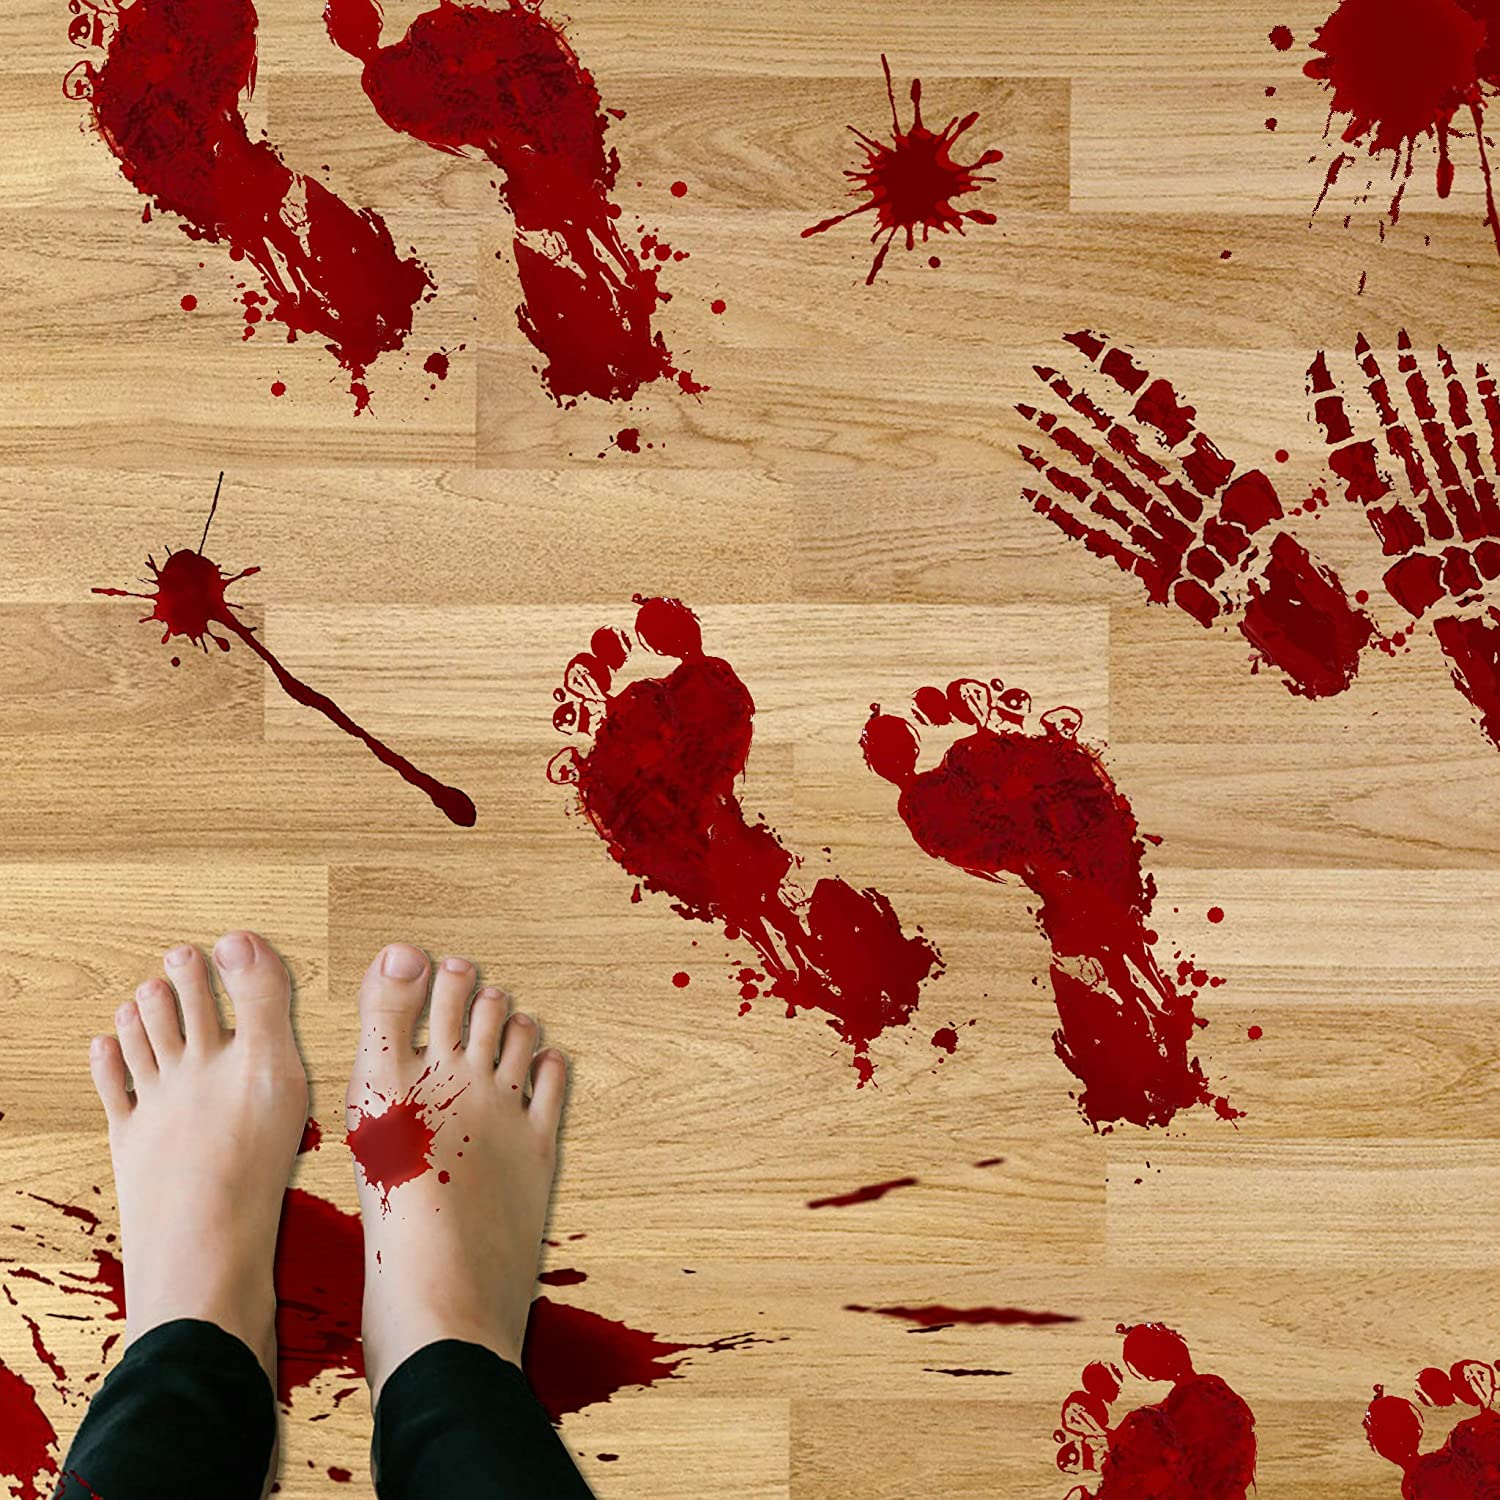 TEEHOME Bloody Footprints Floor Clings (42pcs - 8 Sheets) | Vampire Zombie Party Halloween Creepy Decorations Decals Stickers Supplies | Best Scare Halloween Decorations for Floor and Wall